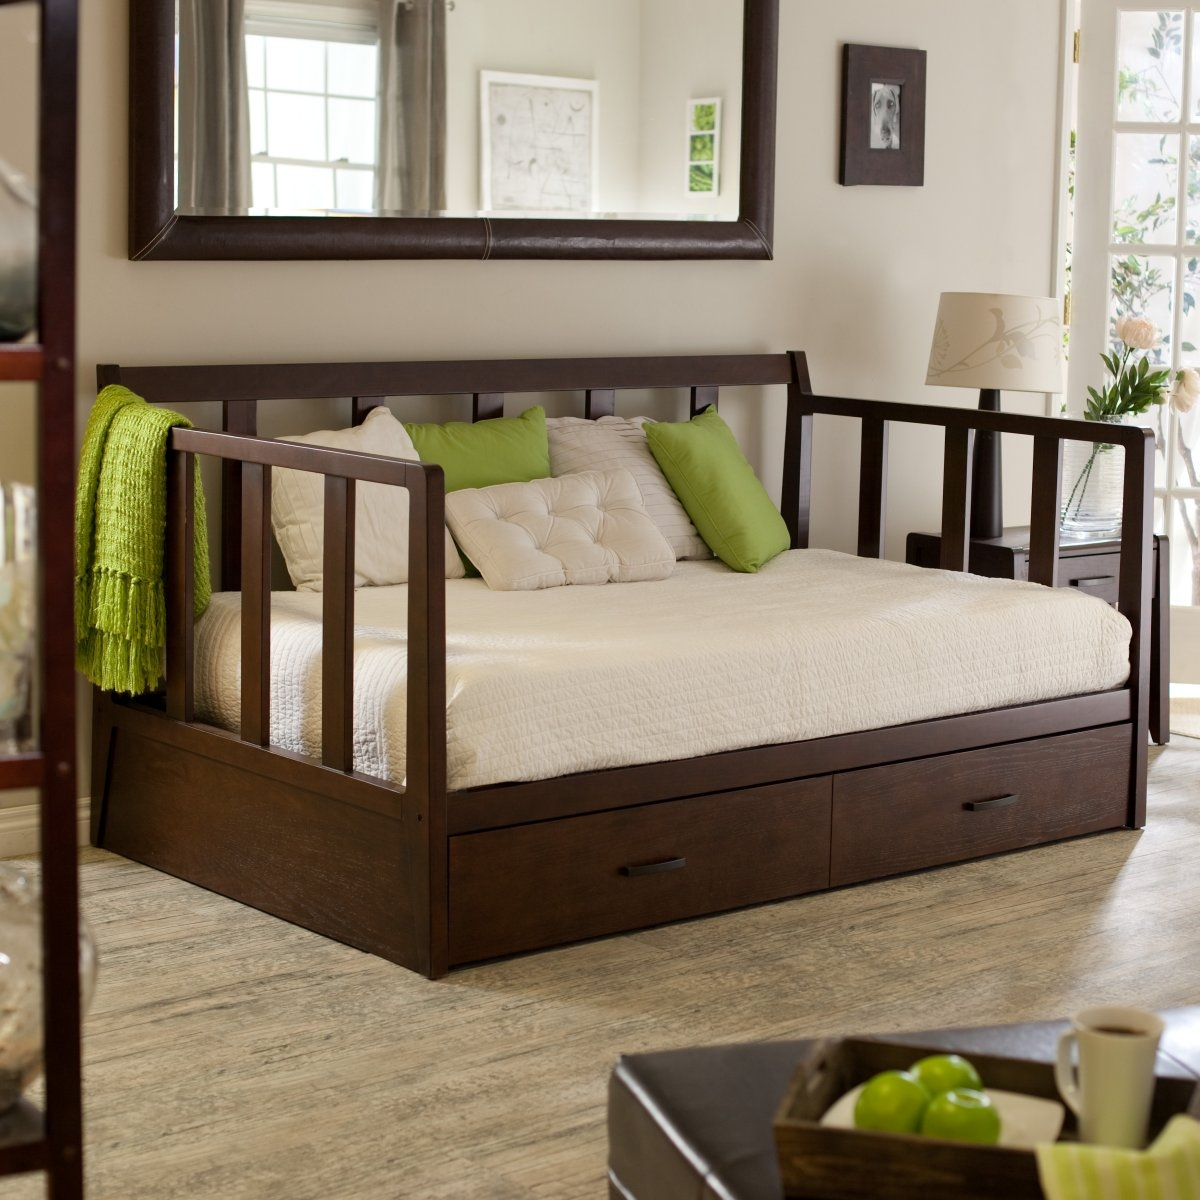 Full Size Daybed Frame With Storage